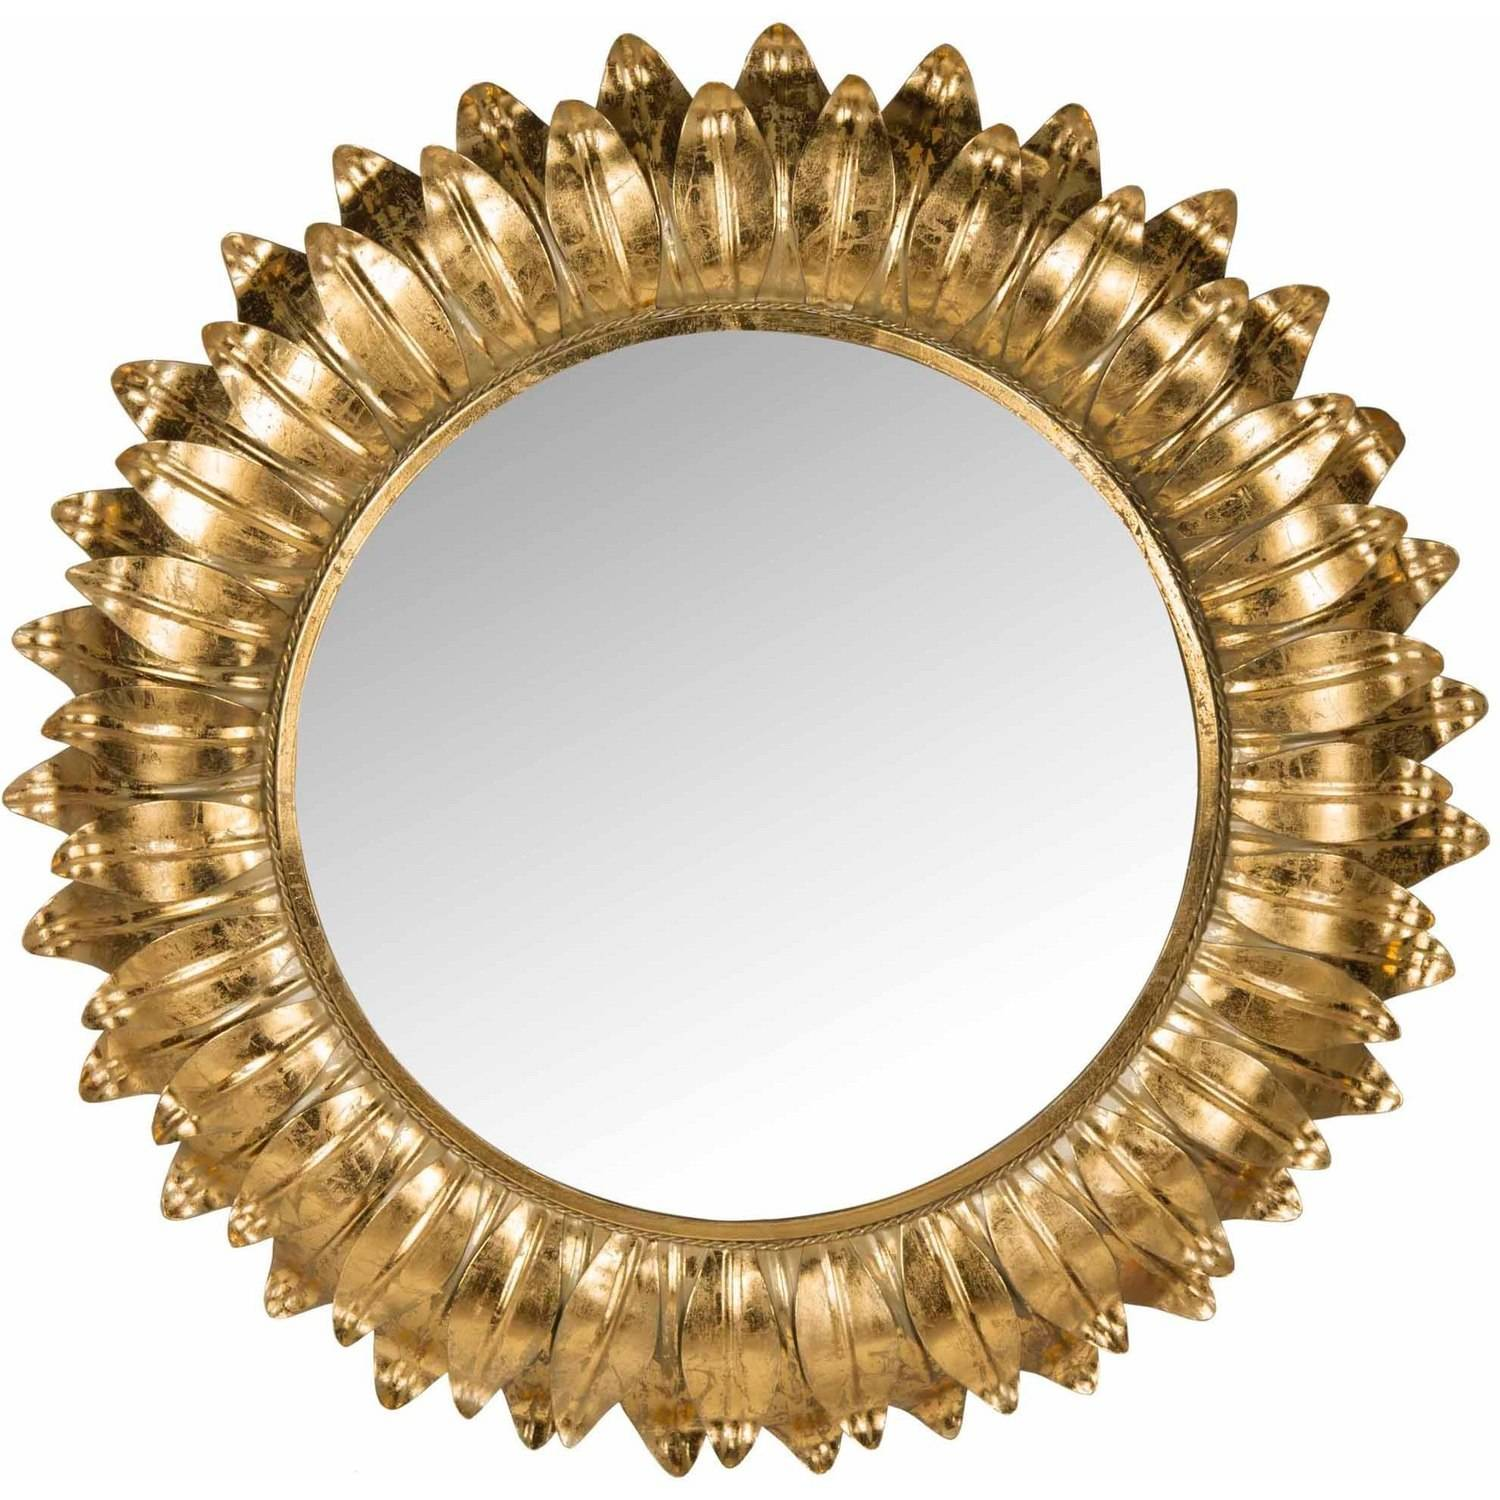 Safavieh Arles Sunburst Mirror, Gold Foil